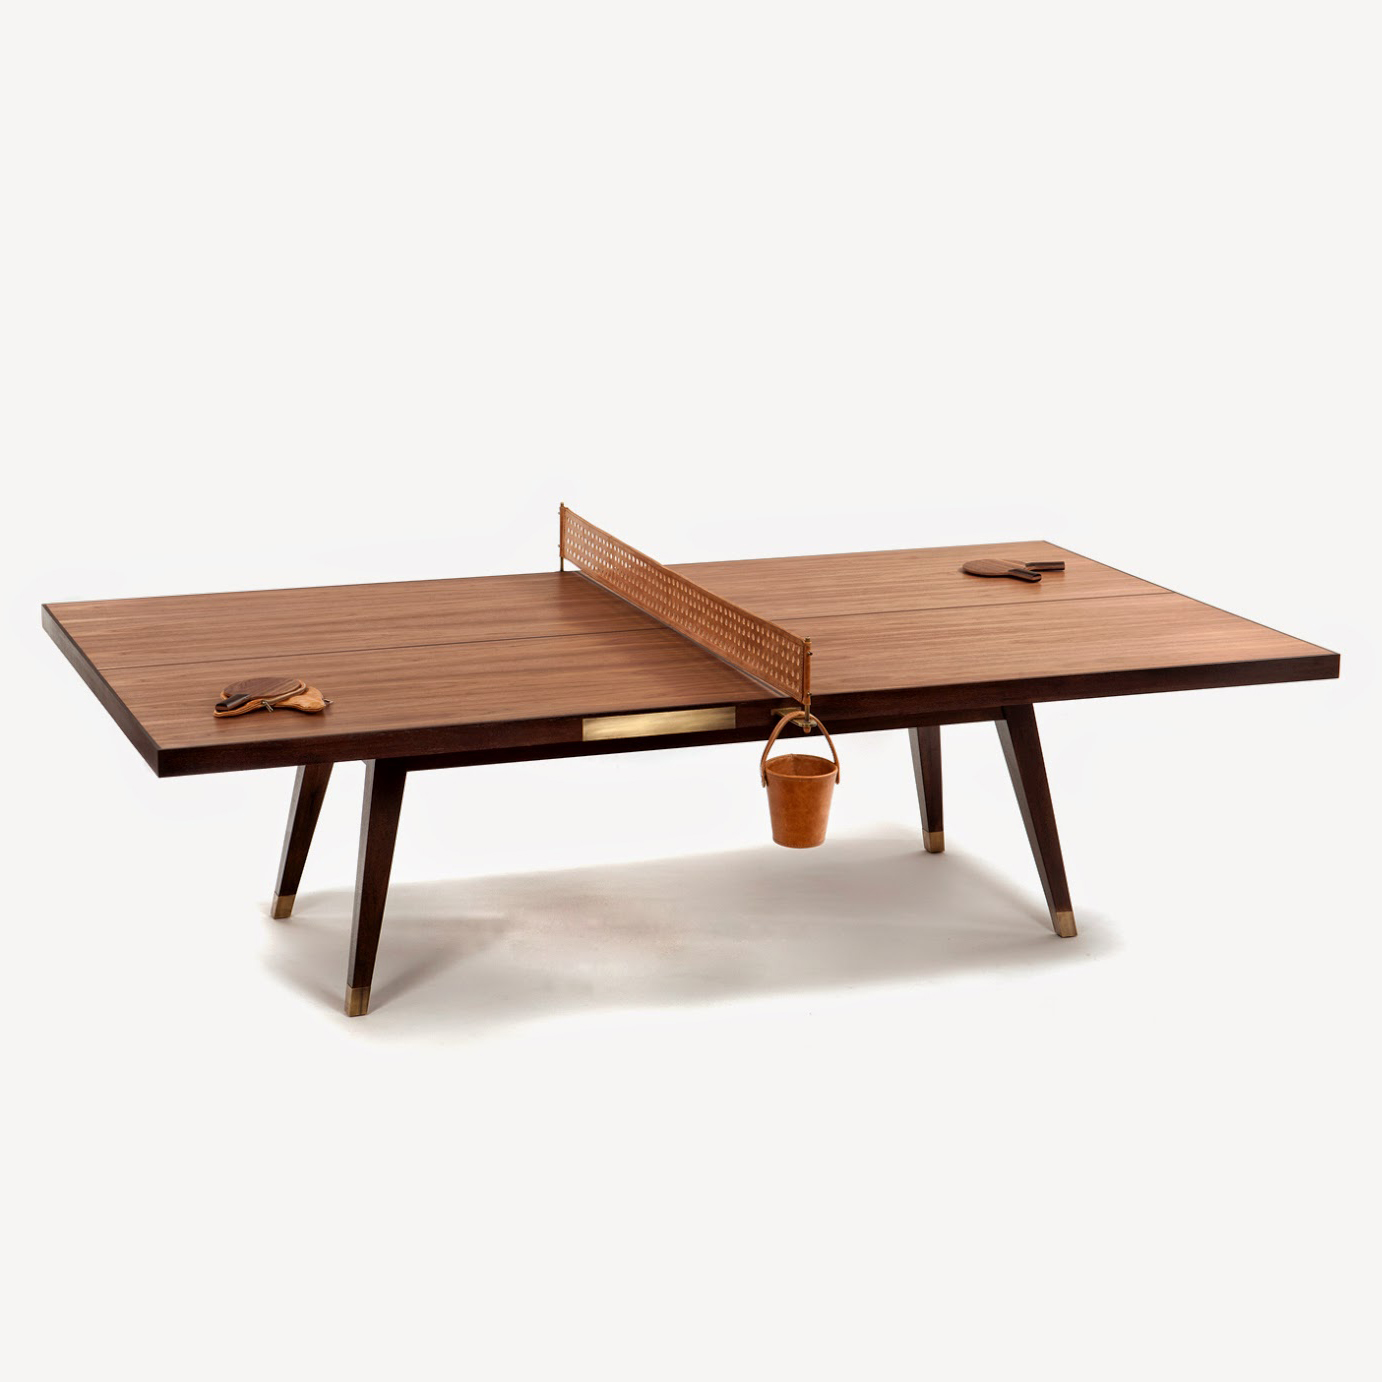 Superieur Letu0027s Bounce: Wood Ping Pong Table By Etel U2014 KNSTRCT